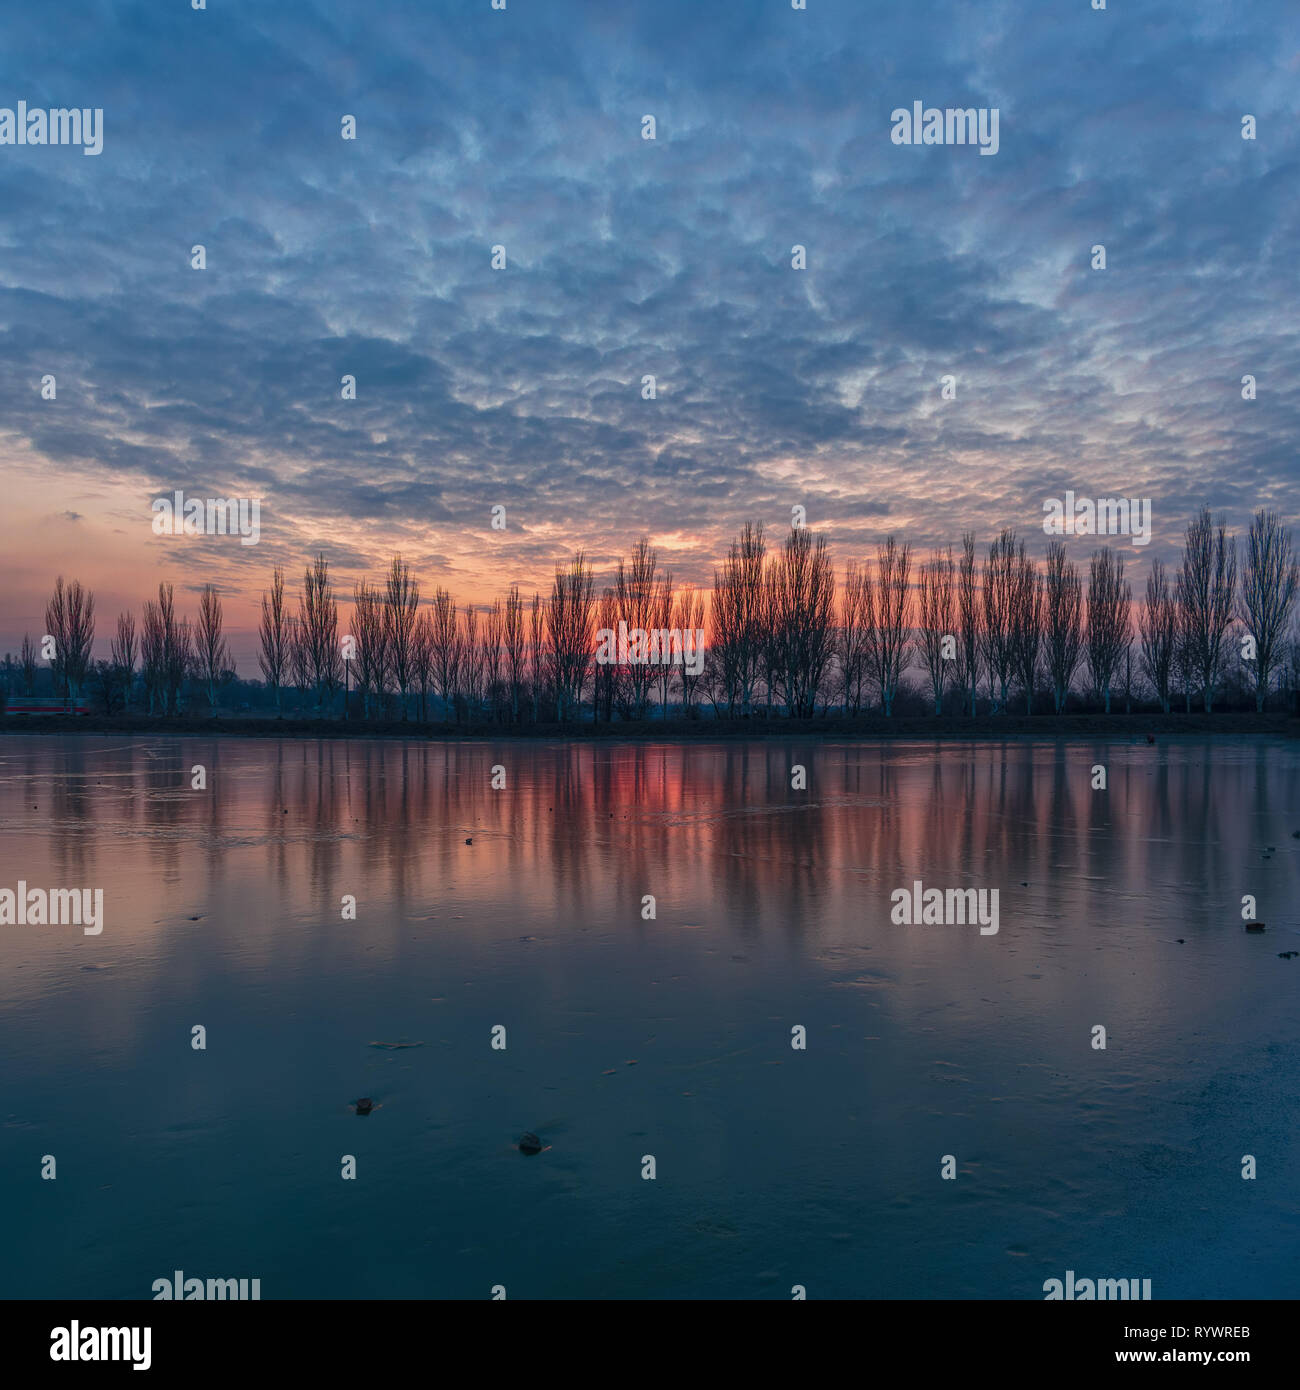 Evening winter landscape with poplar trees alley, bright cloudy sunset over the frozen river lake in Kriviy Rih, Ukraine - Stock Image